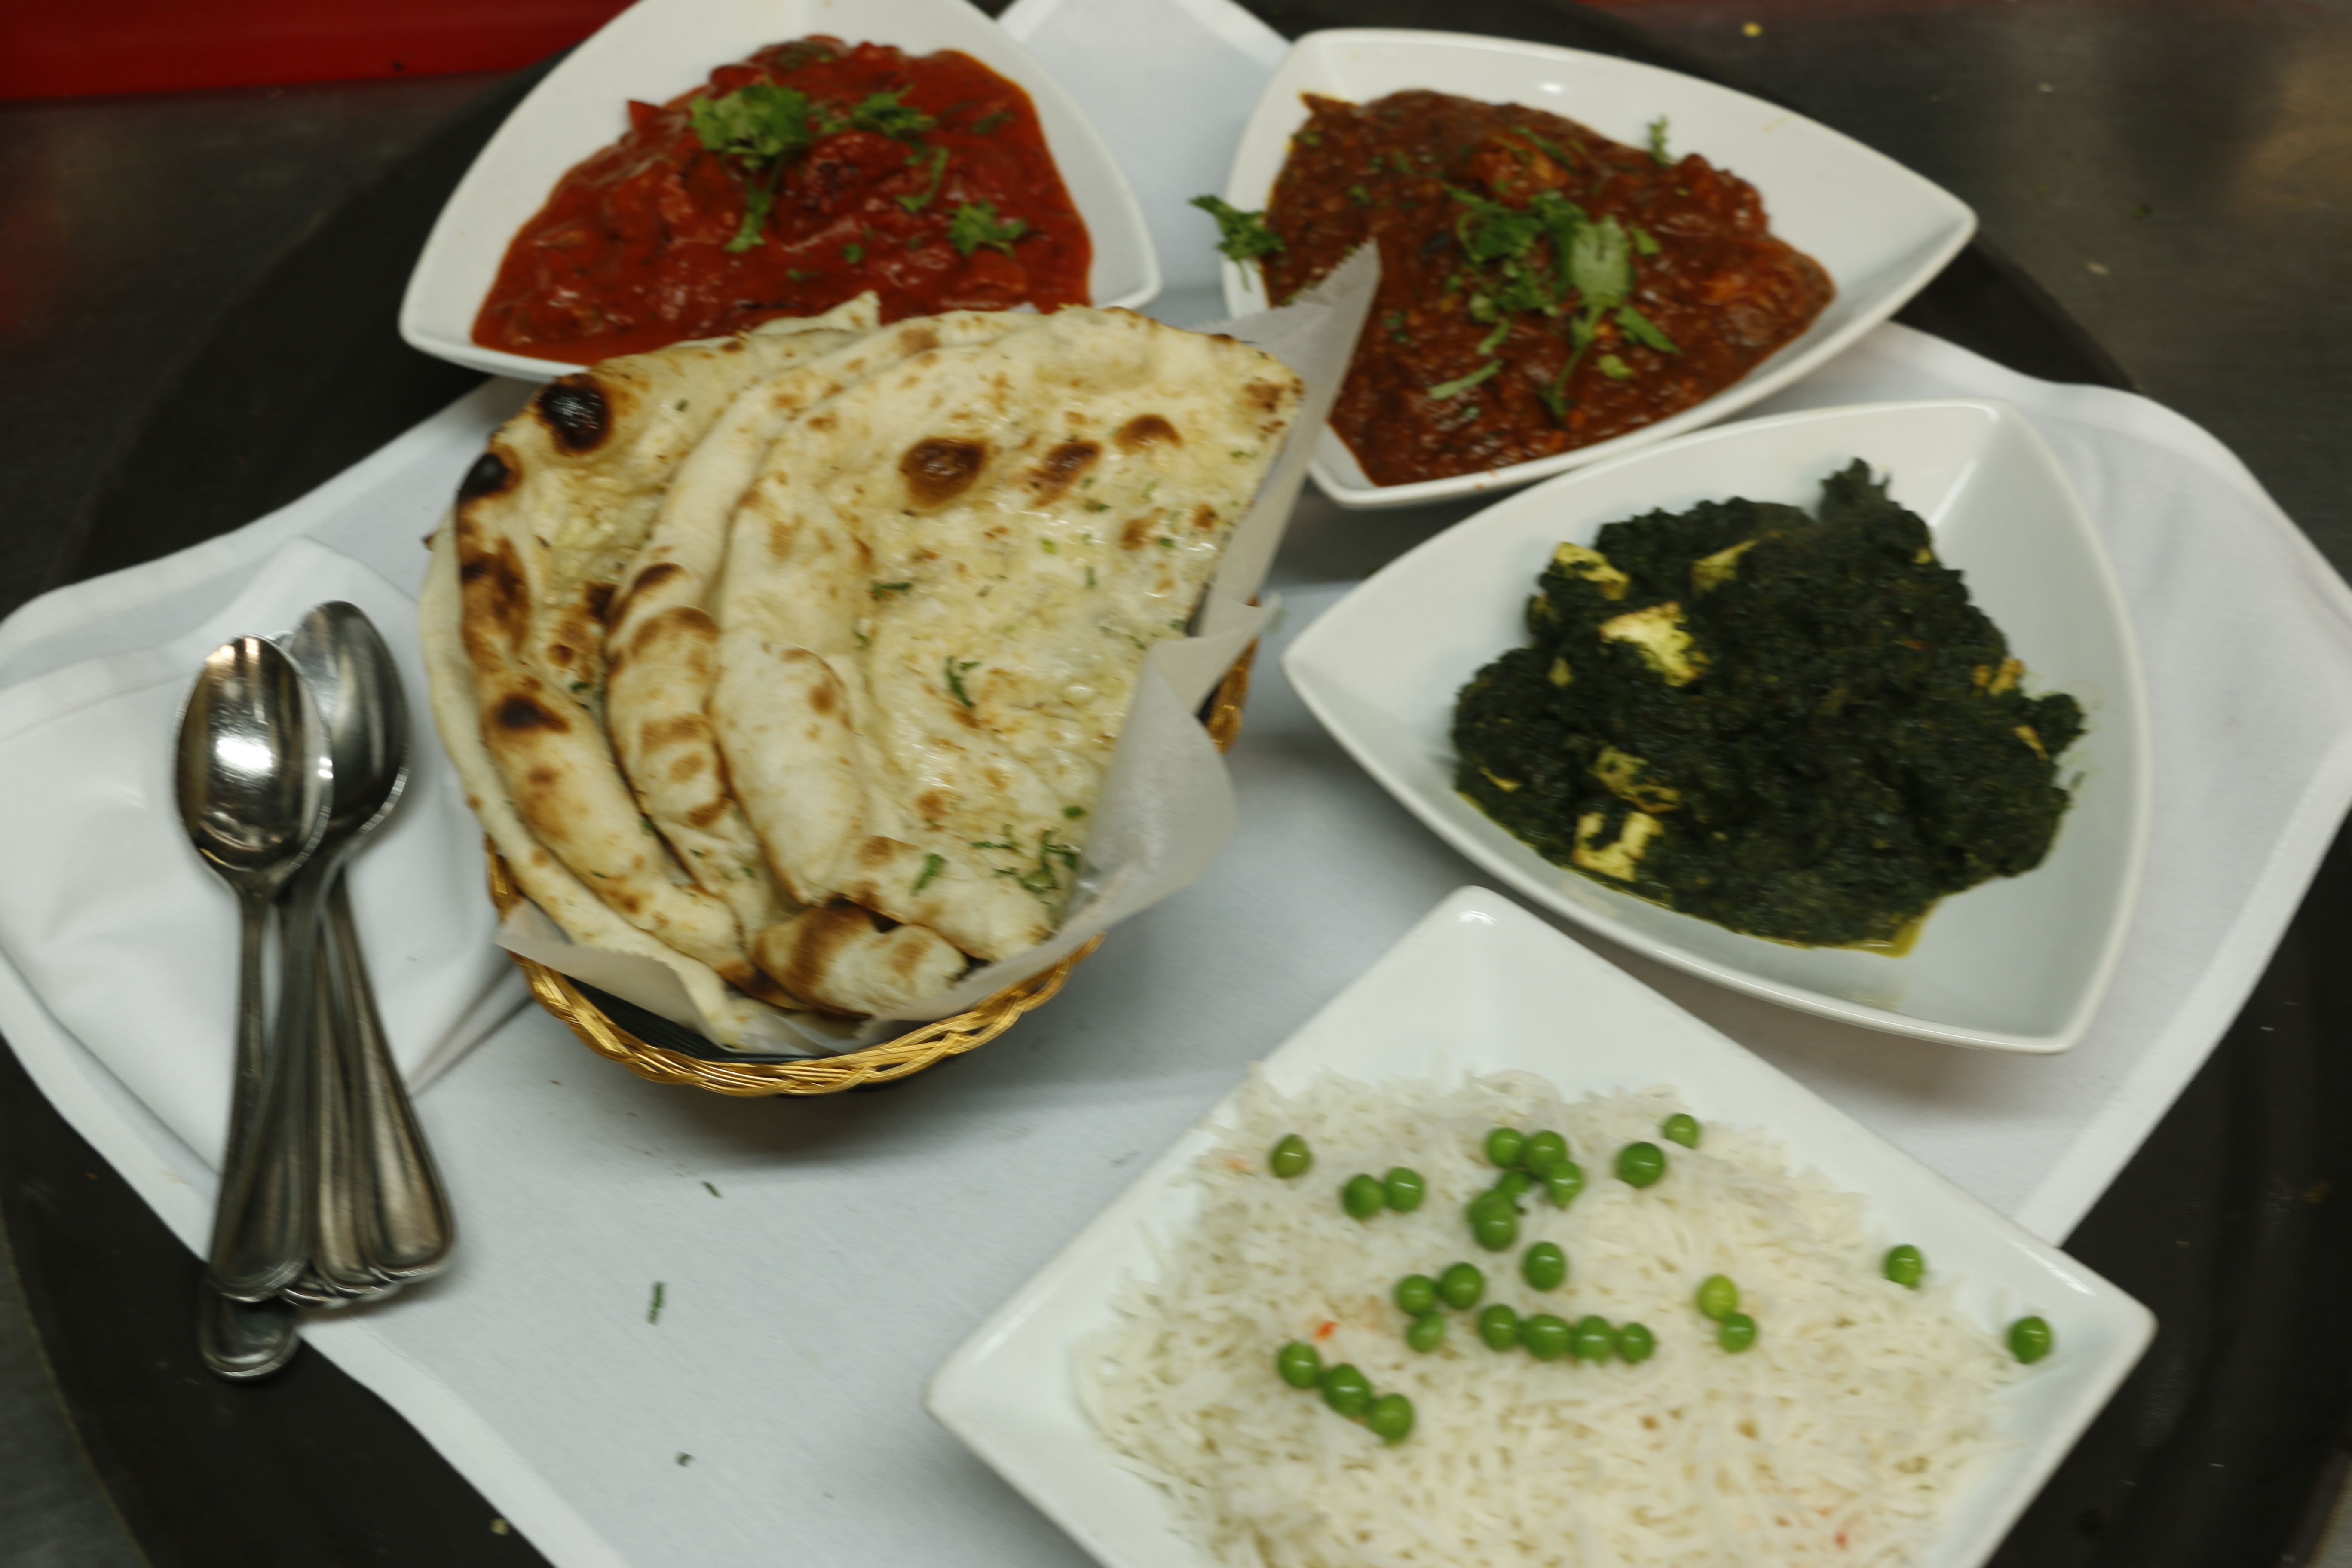 Excellent Dining Menu in Midtown Manhattan and Healthy Indian Food. Specializing in Curry, Masala and Tandoori Recipes